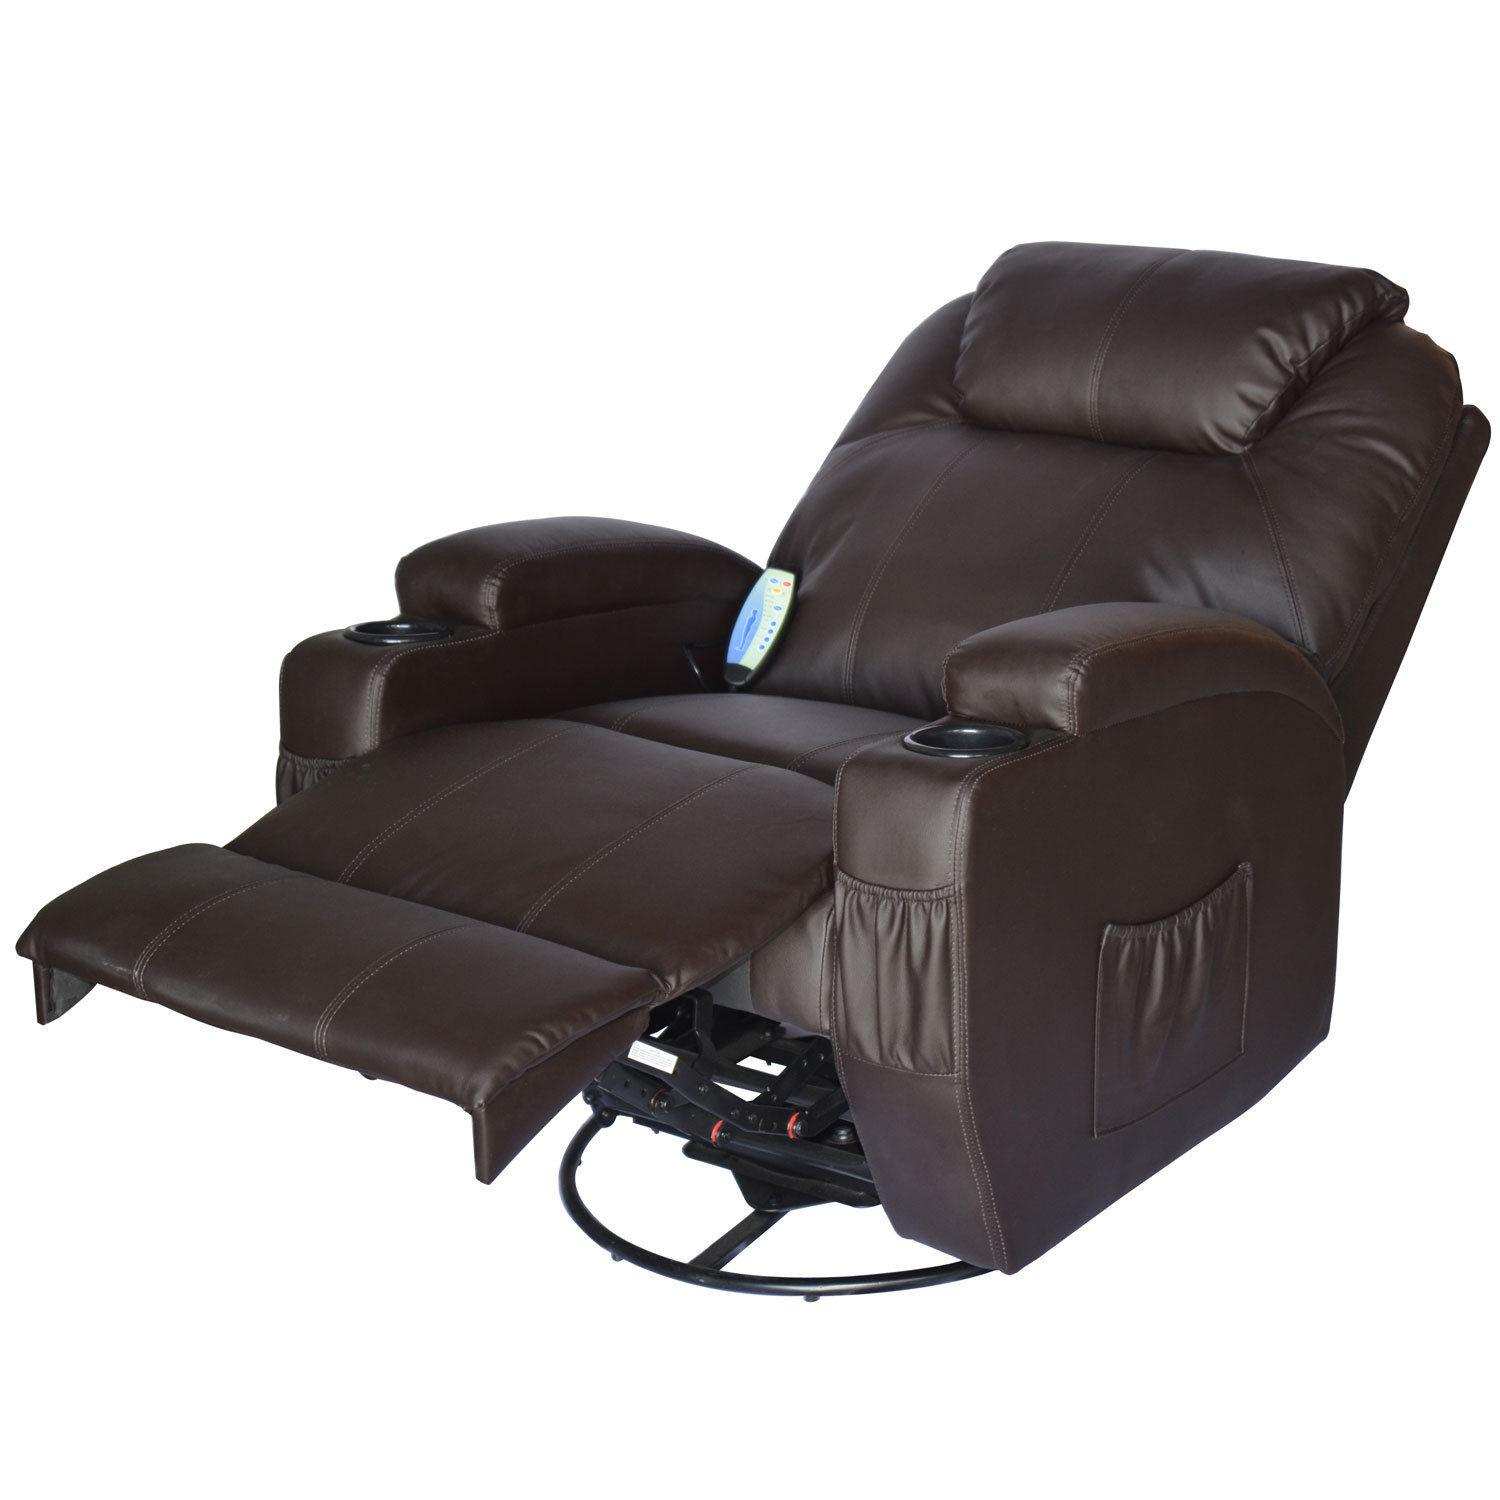 prod on hospital chair electric furniture with recliner patient point reclining product industries legrest casters high